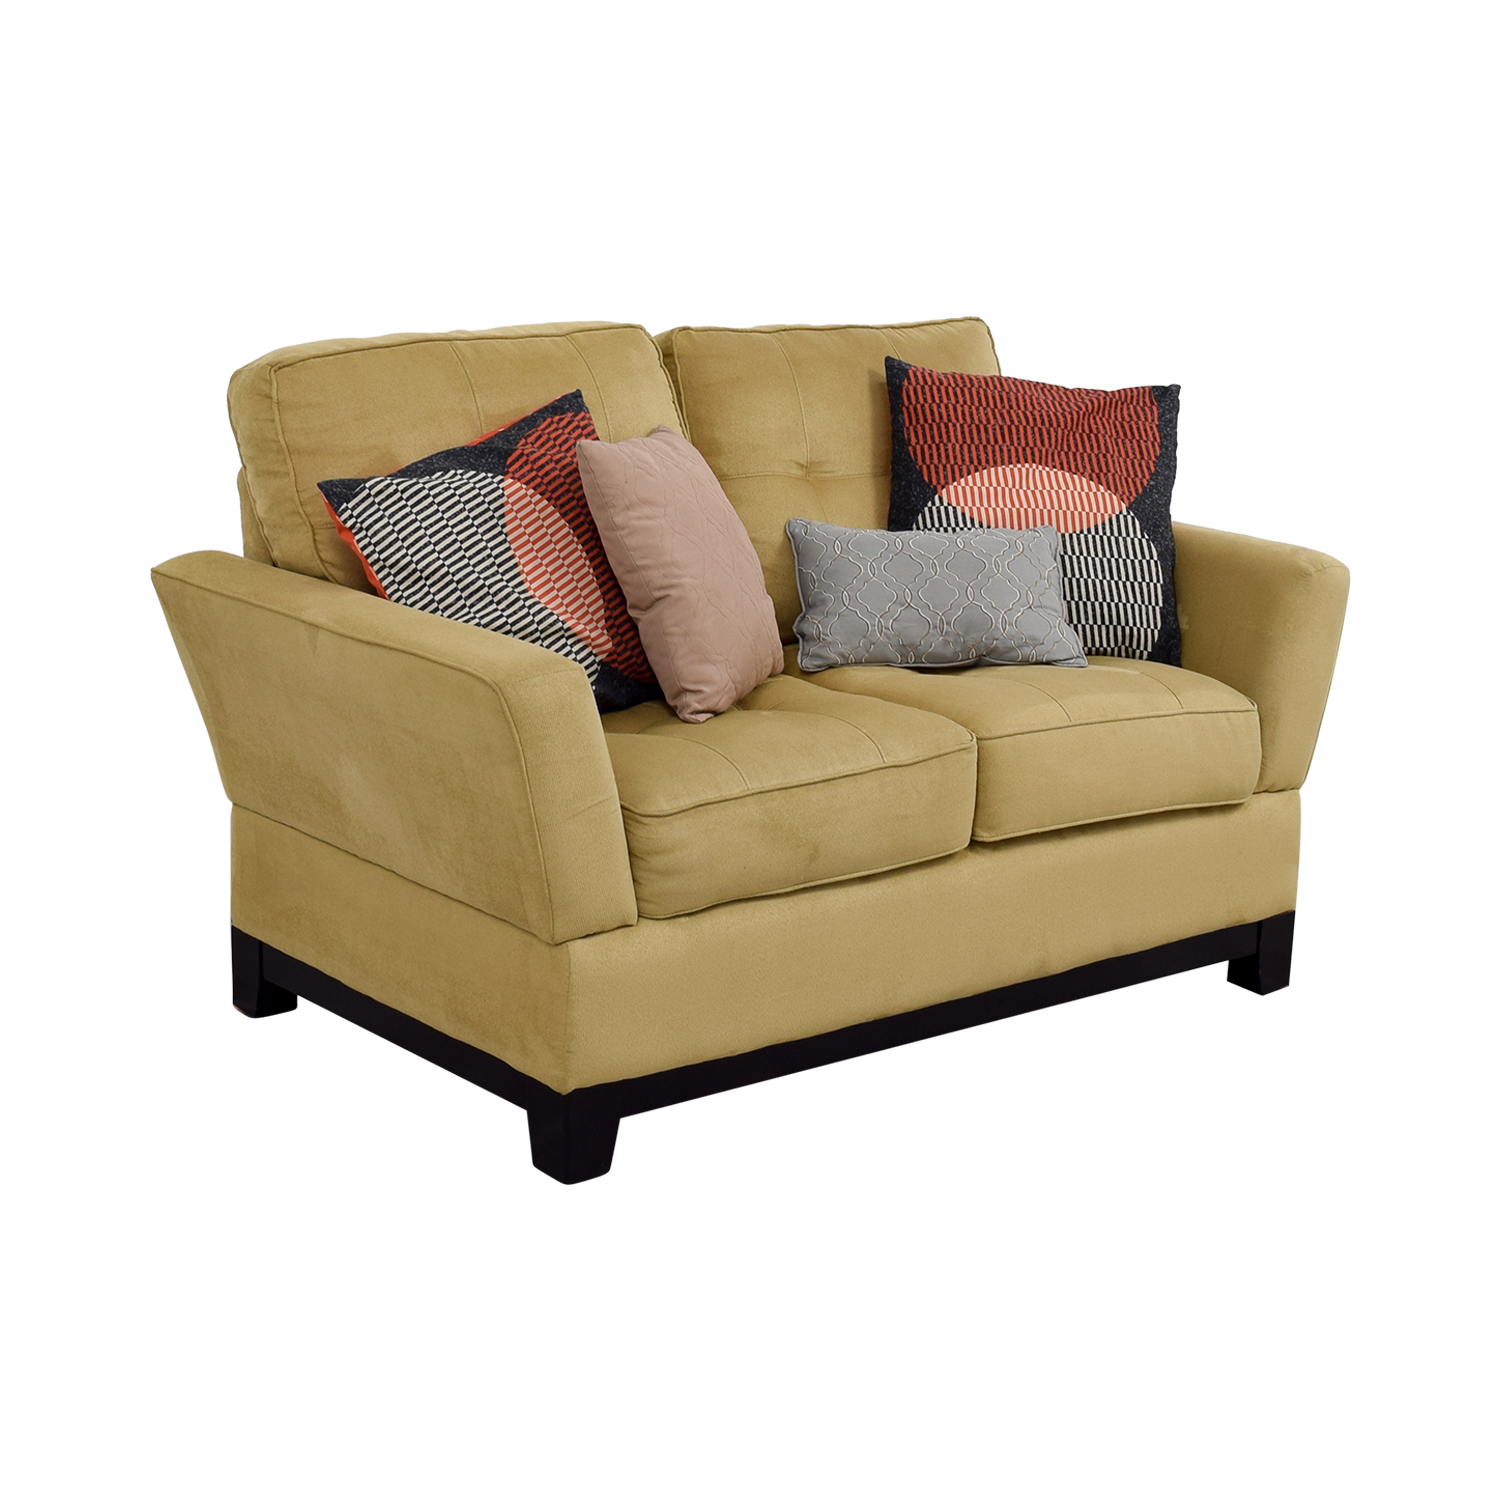 77 Off Ashley Furniture Ashley Furniture Tan Loveseat Sofas